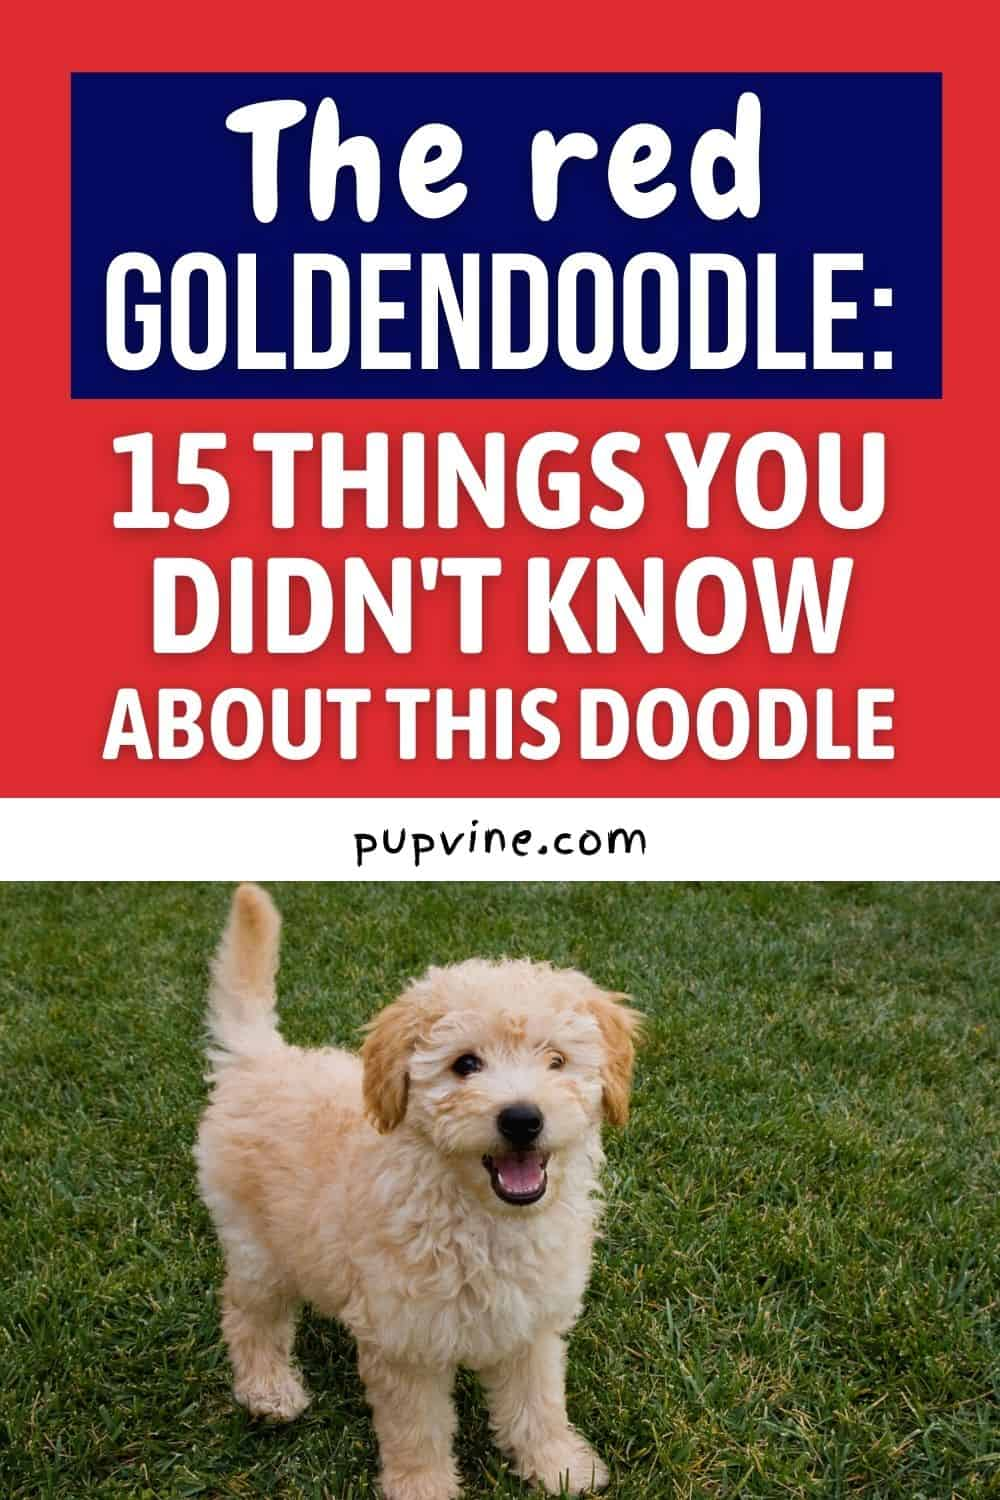 The Red Goldendoodle: 15 Things You Didn't Know About This Doodle